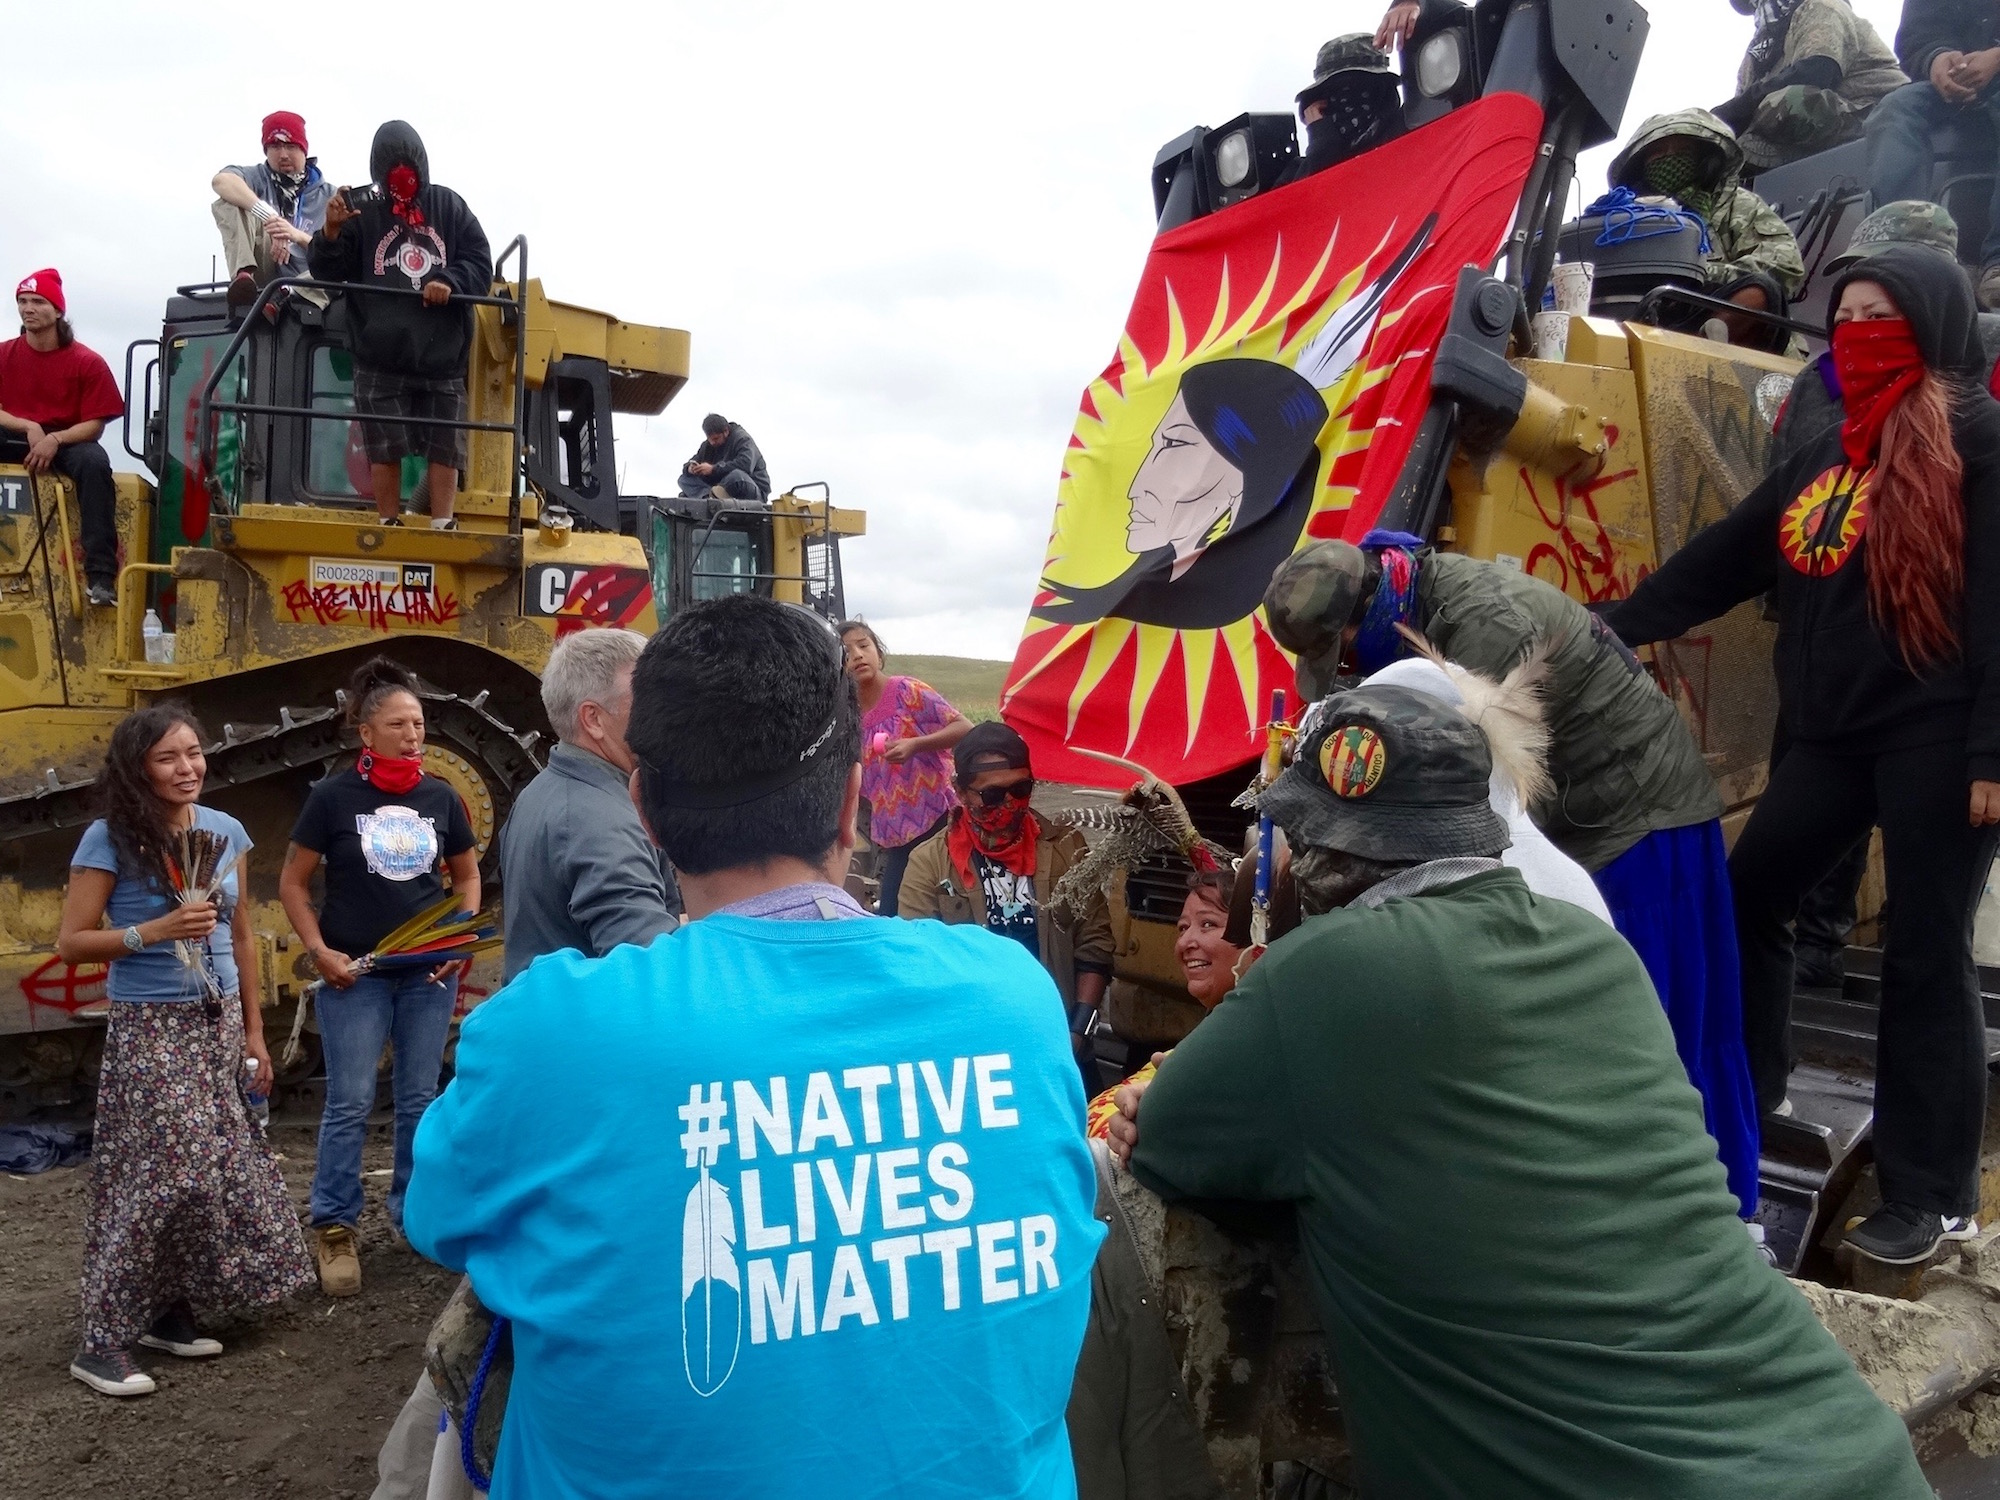 Zoltán Grossman: Cowboys stay quiet as tribes unite for #NoDAPL fight